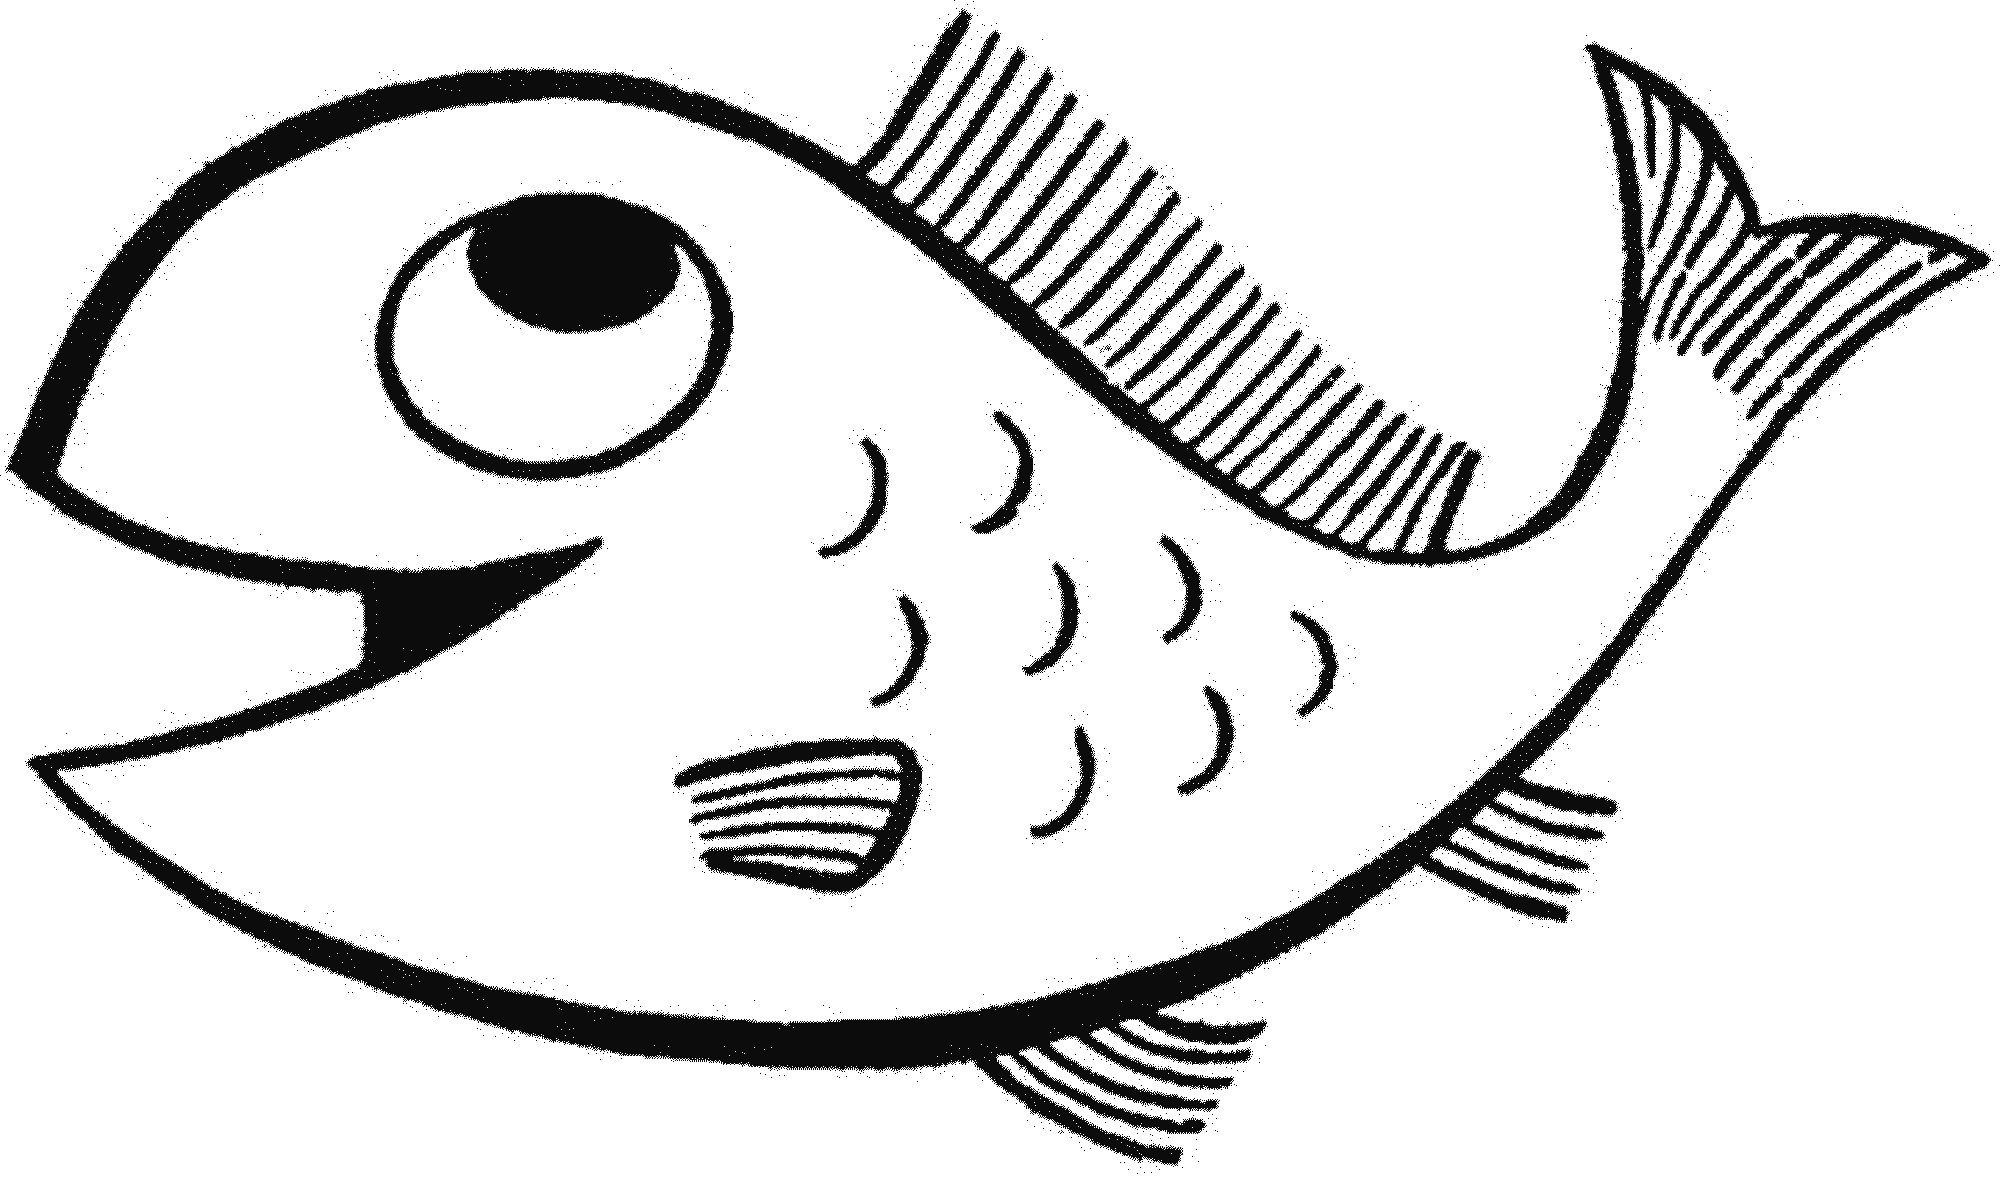 Rainbow Fish Coloring Page Awesome Awesome Fish Template Coloring Pages Qulu Rainbow Fish Coloring Page Fish Coloring Pages Printable Coloring Pages